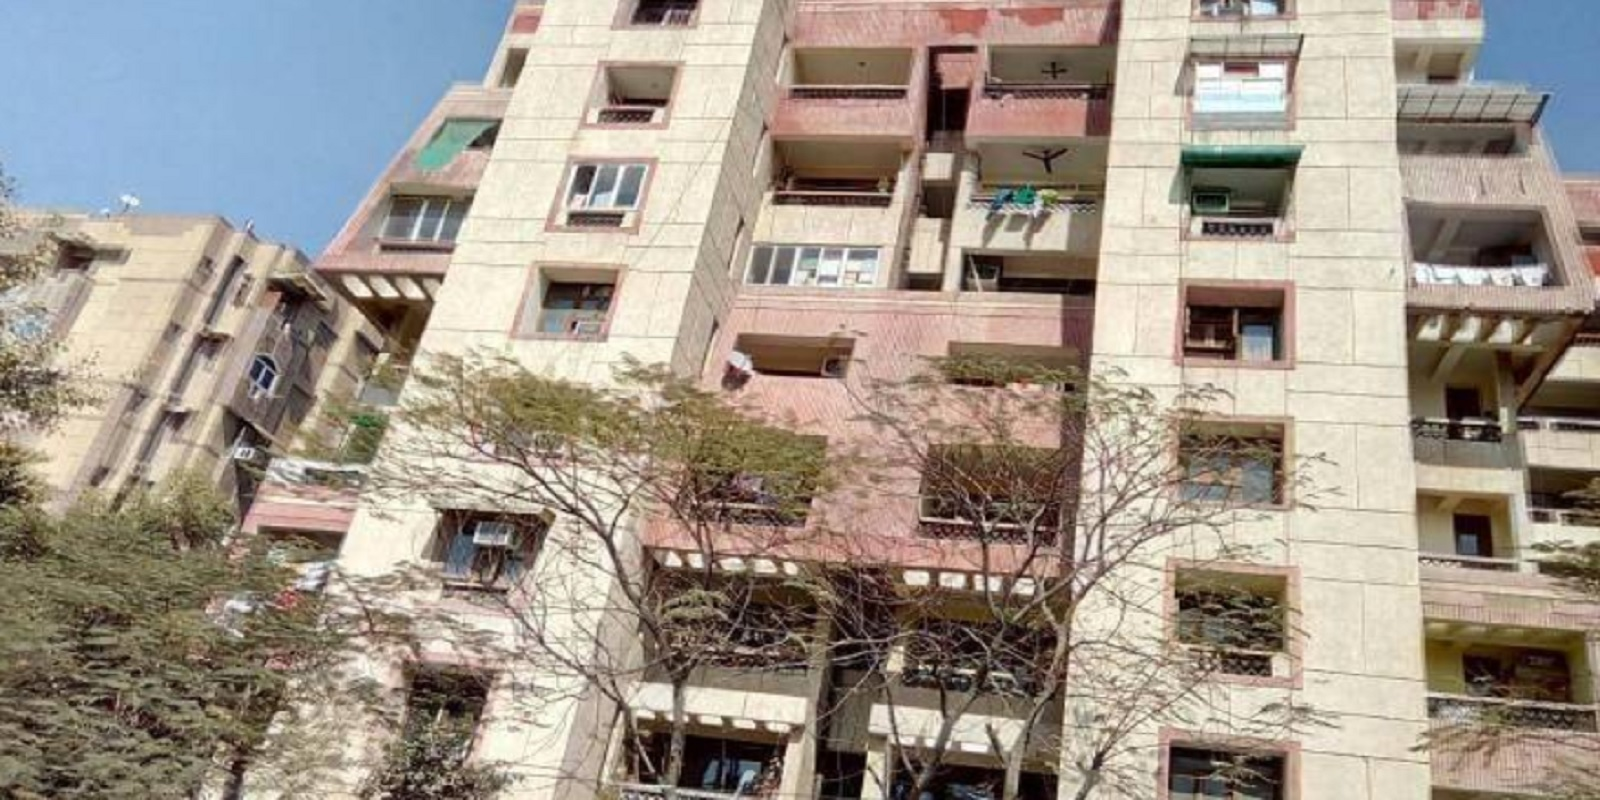 rudra apartments project project large image1